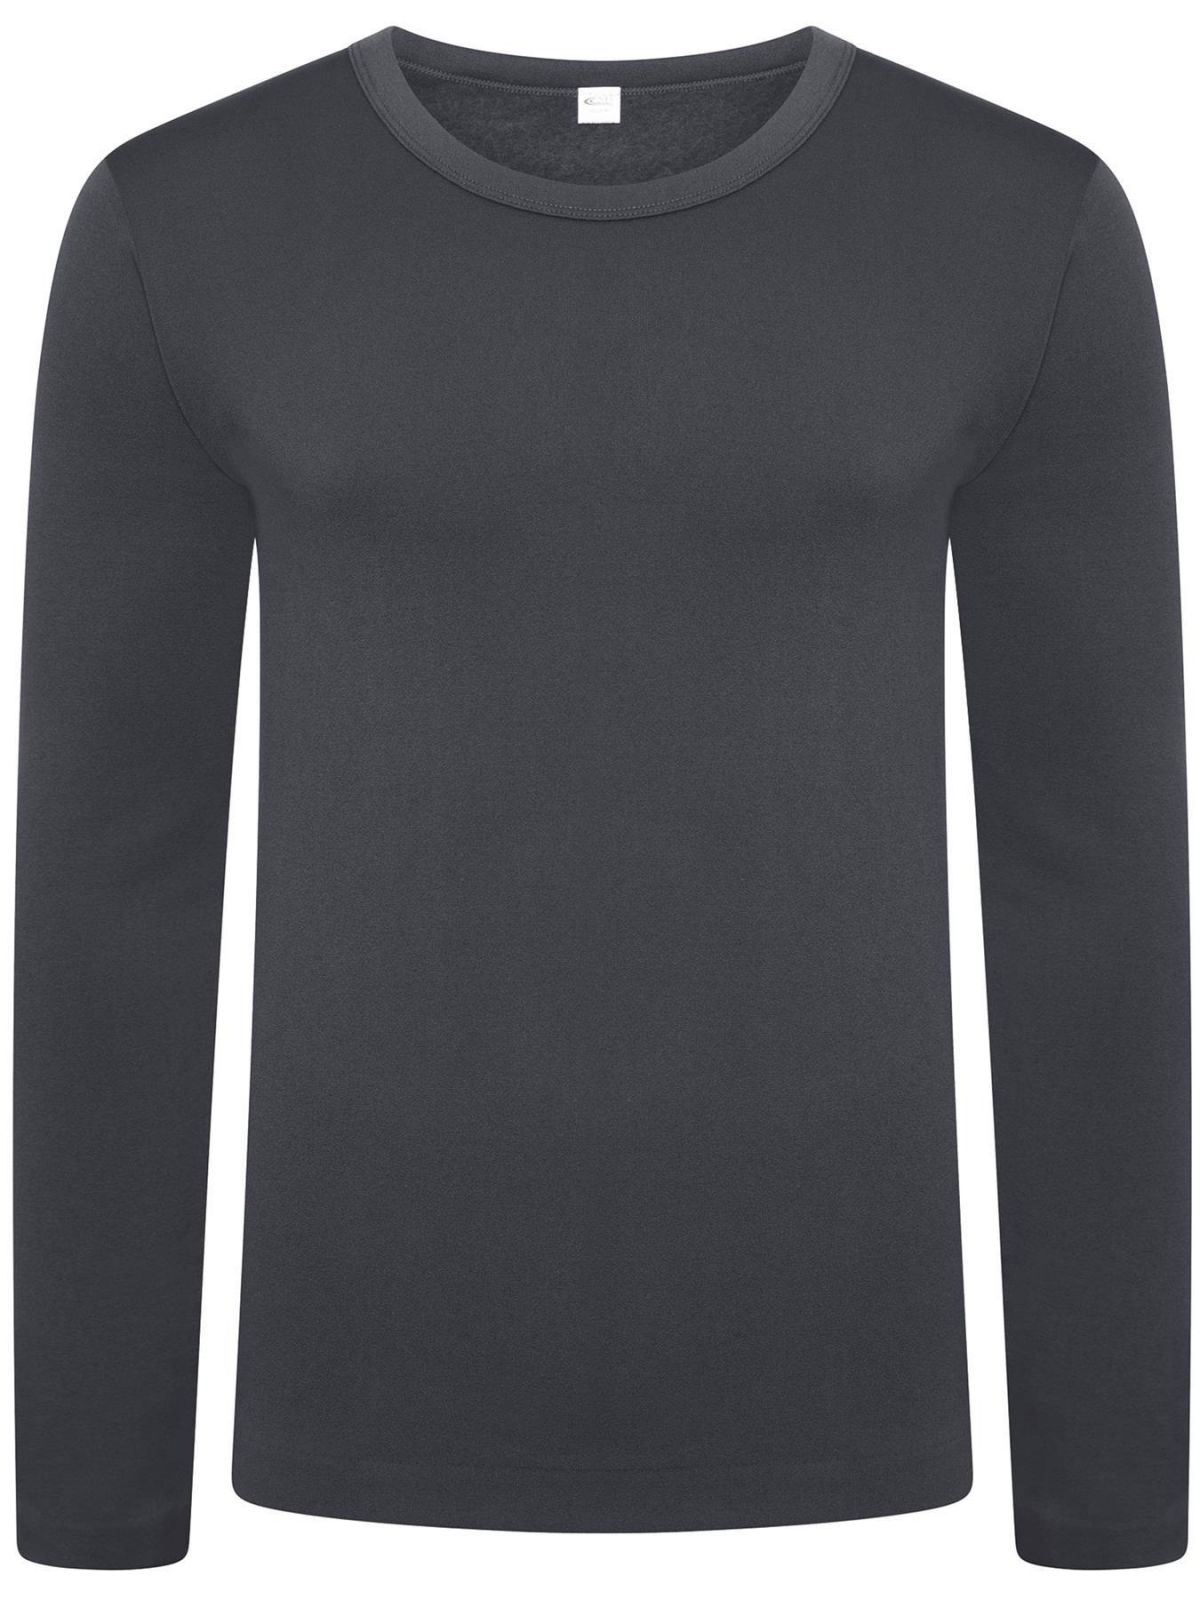 Mens Thermal Long Sleeve Top, From £4.99, Guest Brand, in  | Raw Denim Outlet